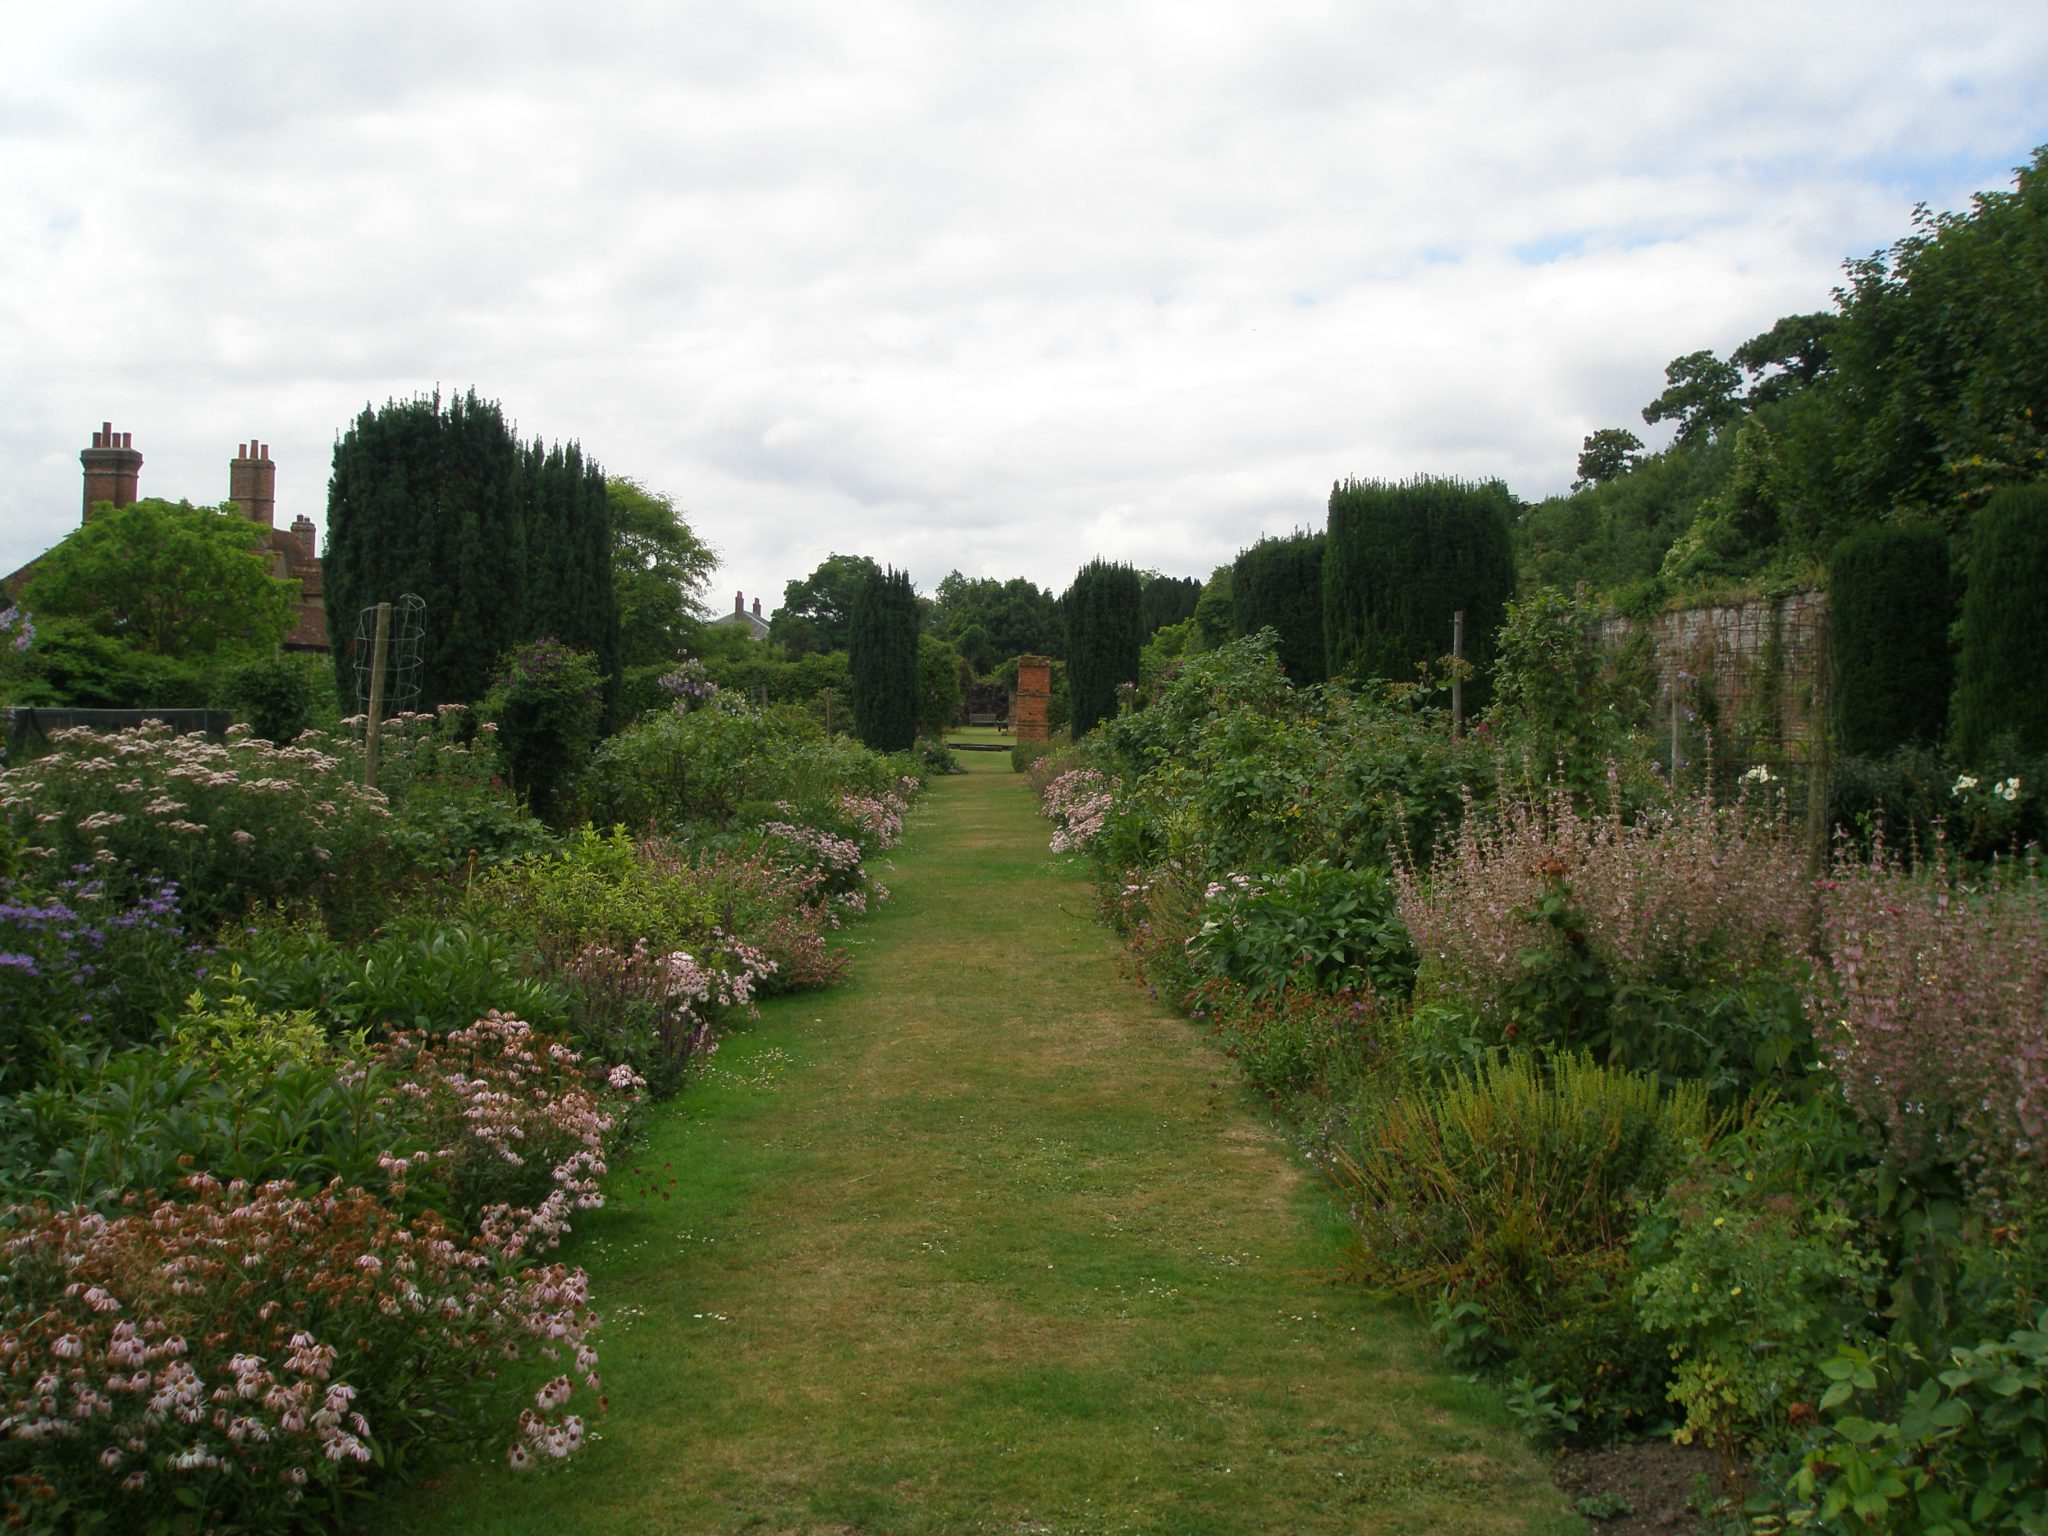 A view from the far end of the Walled Garden, back down along the central path.